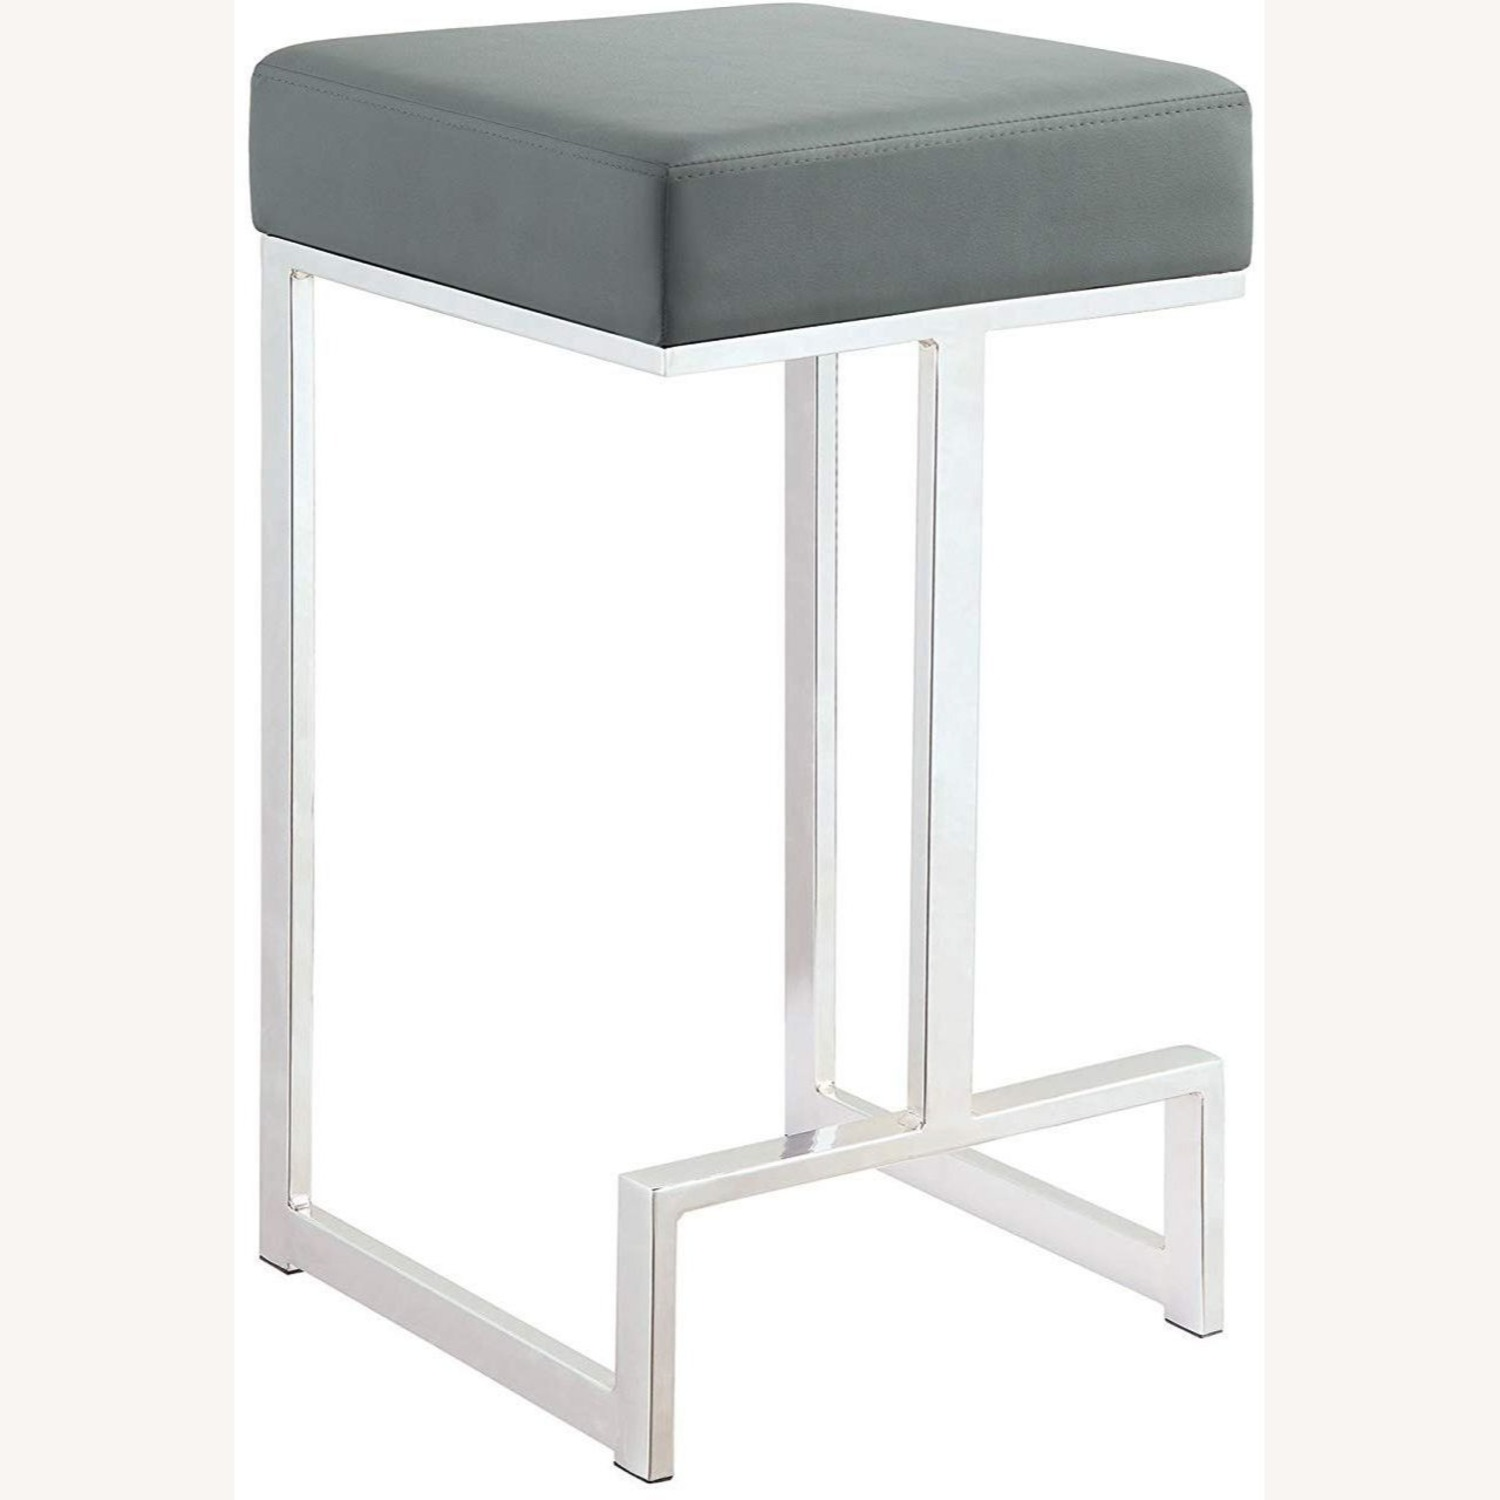 Modern Counter Height Stool In Grey Faux Leather - image-0